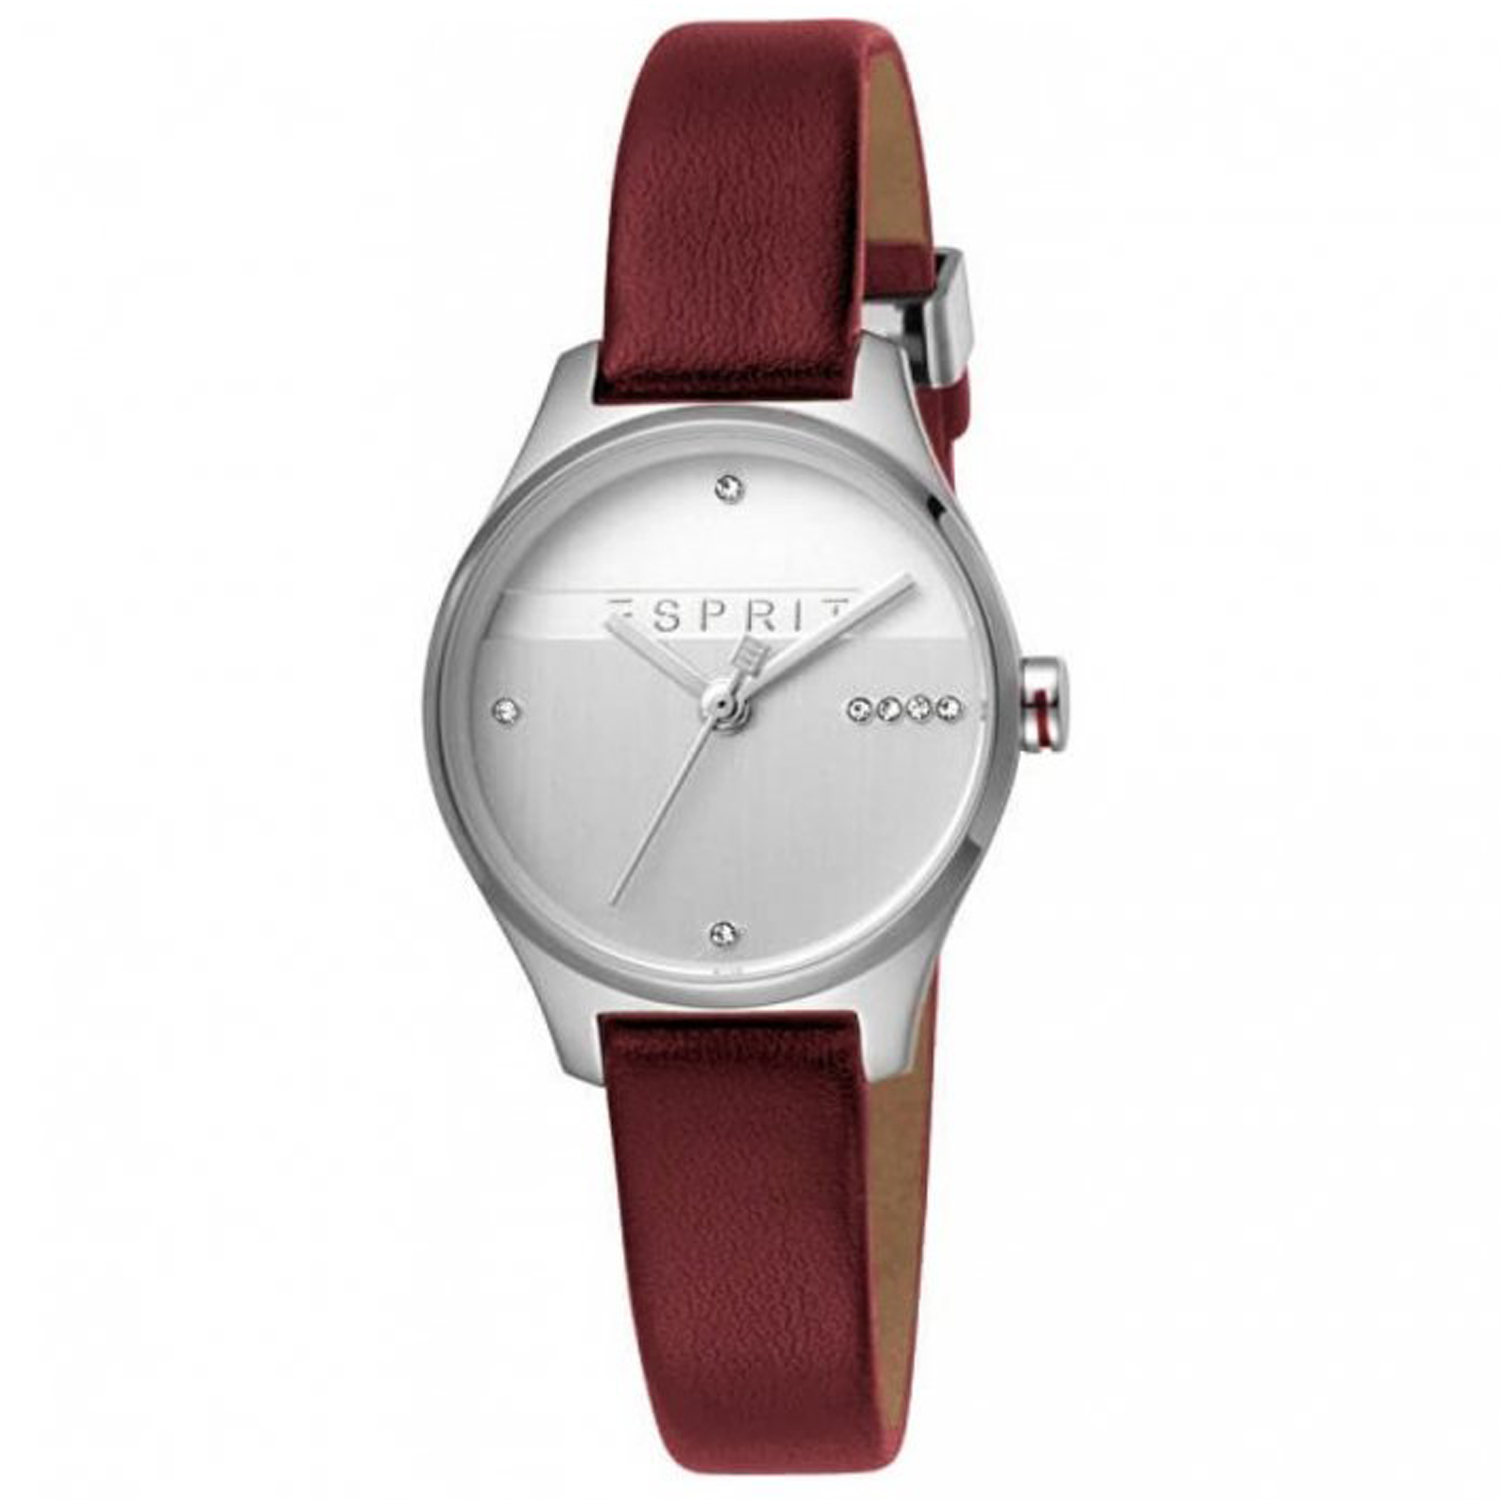 Esprit Watch ES1L054L0025 Silver